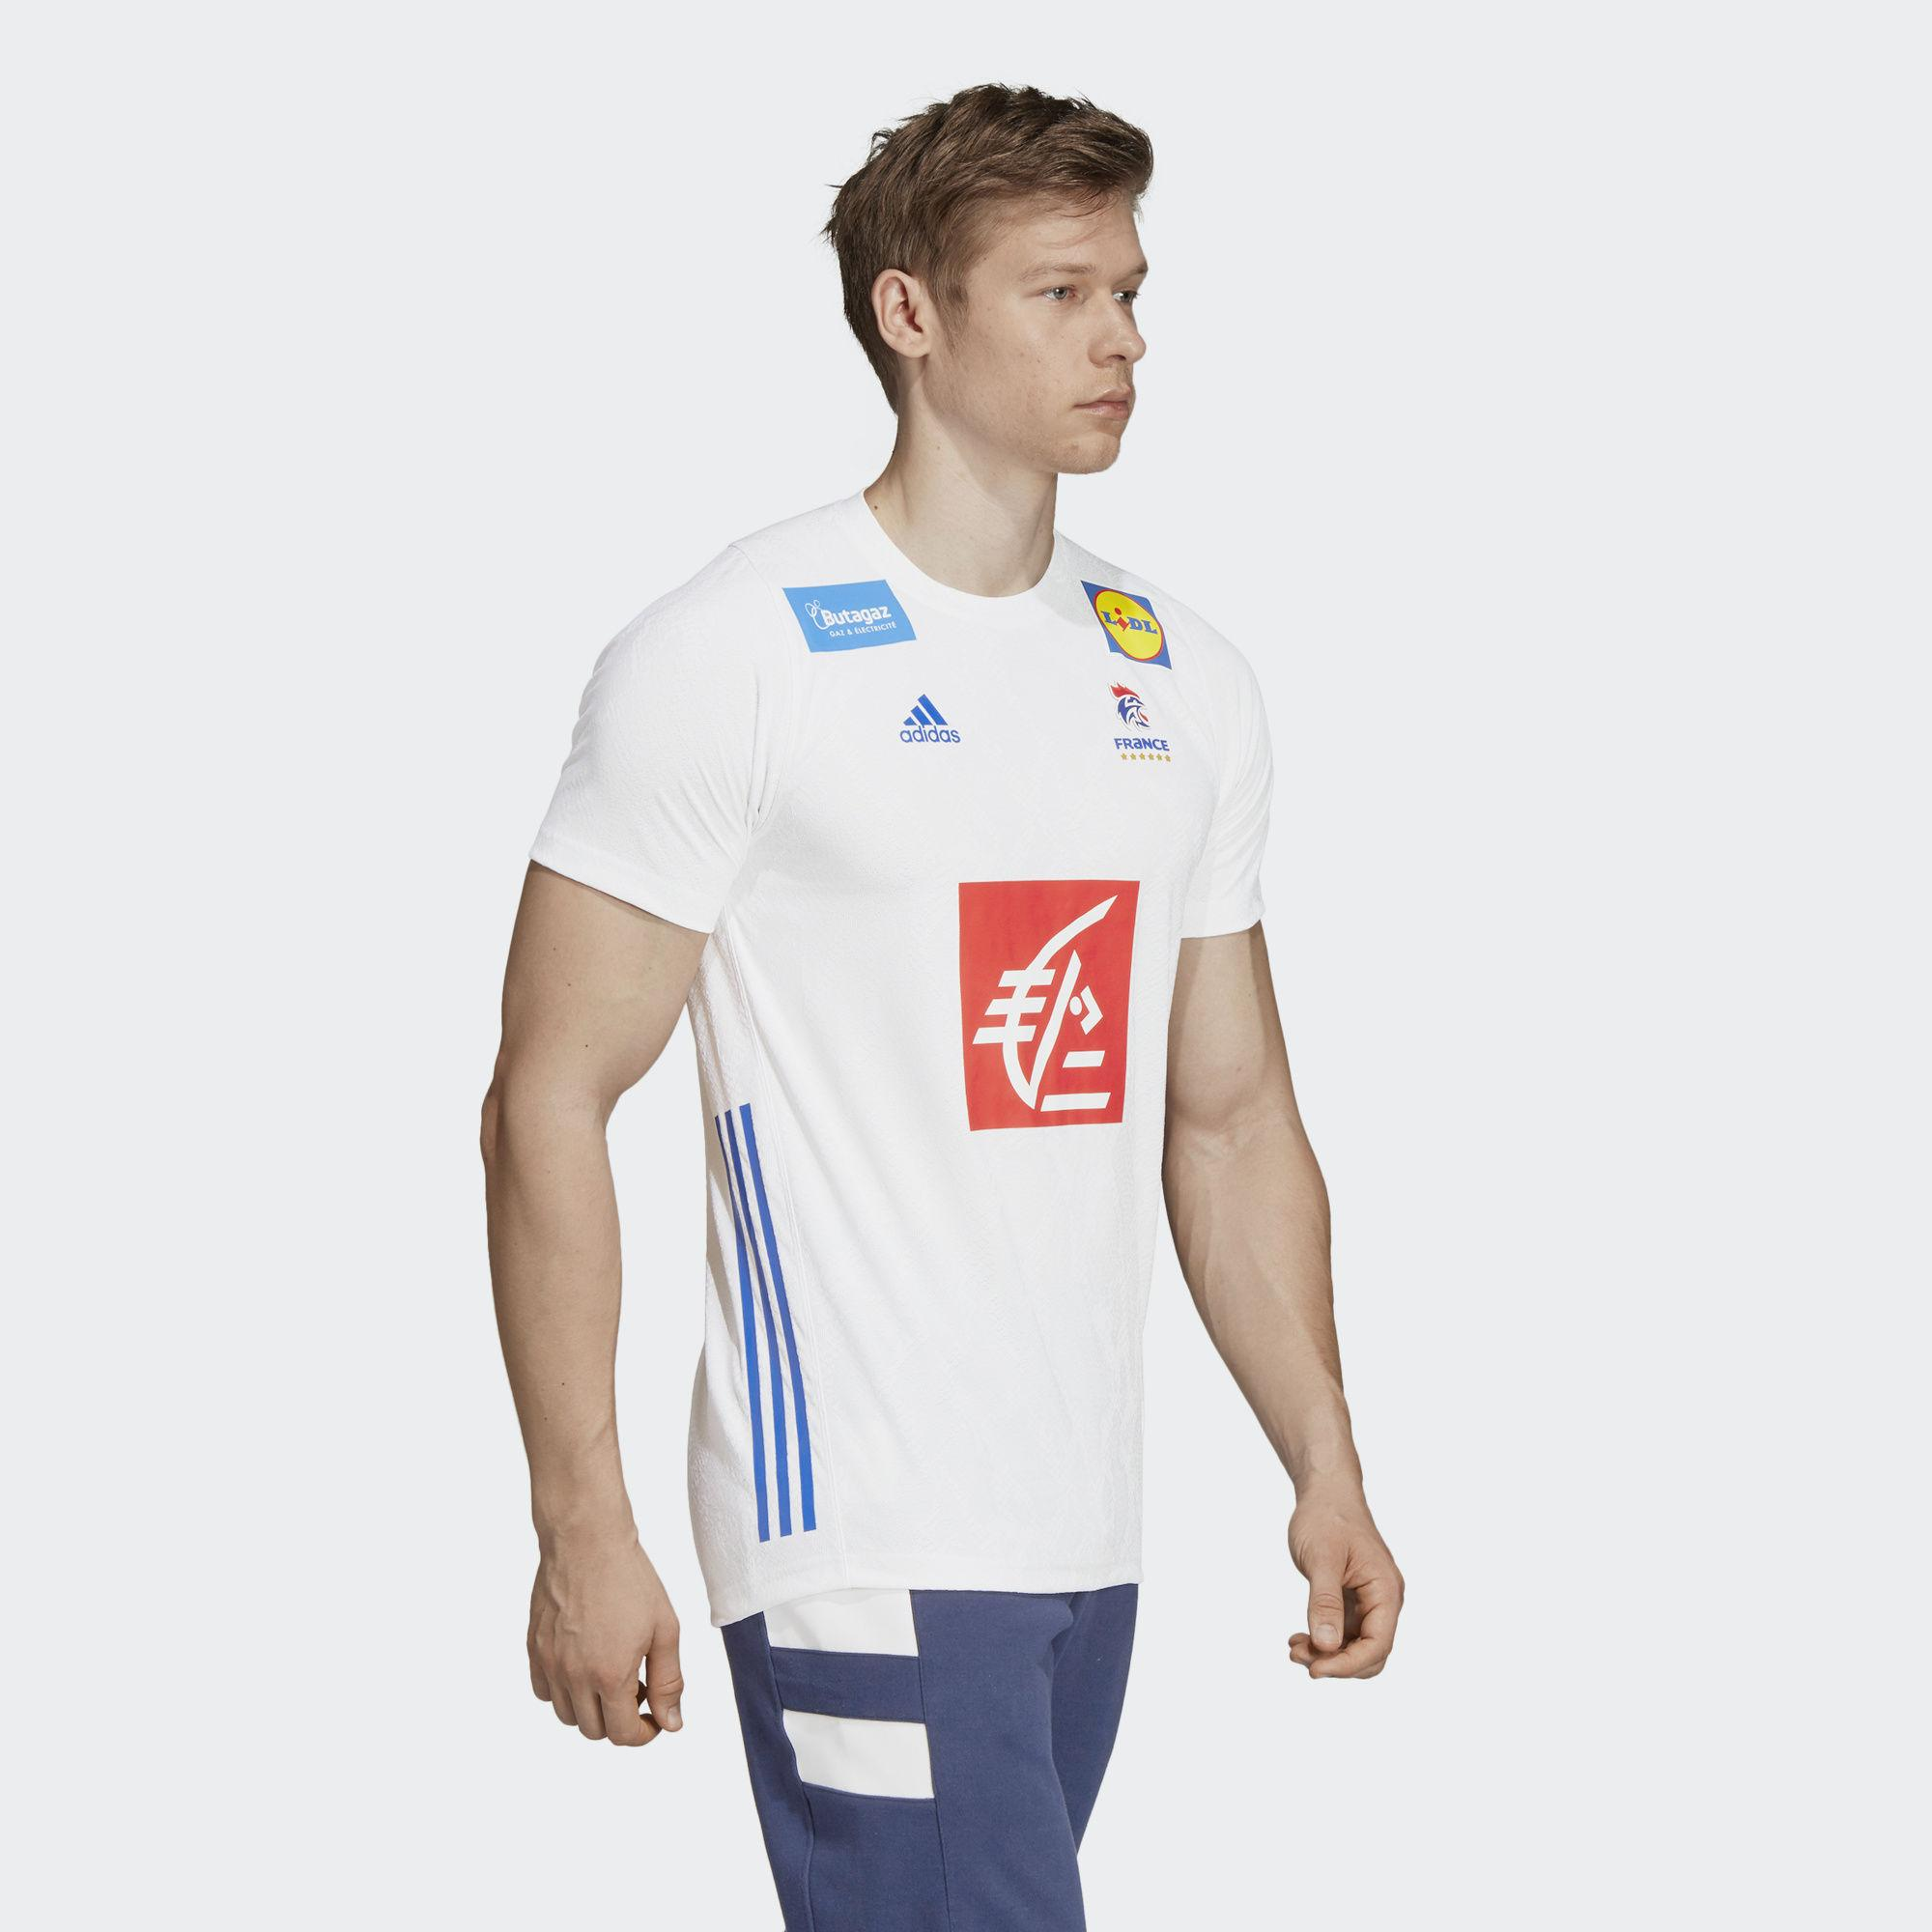 510a09c95 adidas French Handball Federation Replica Jersey in White for Men - Lyst